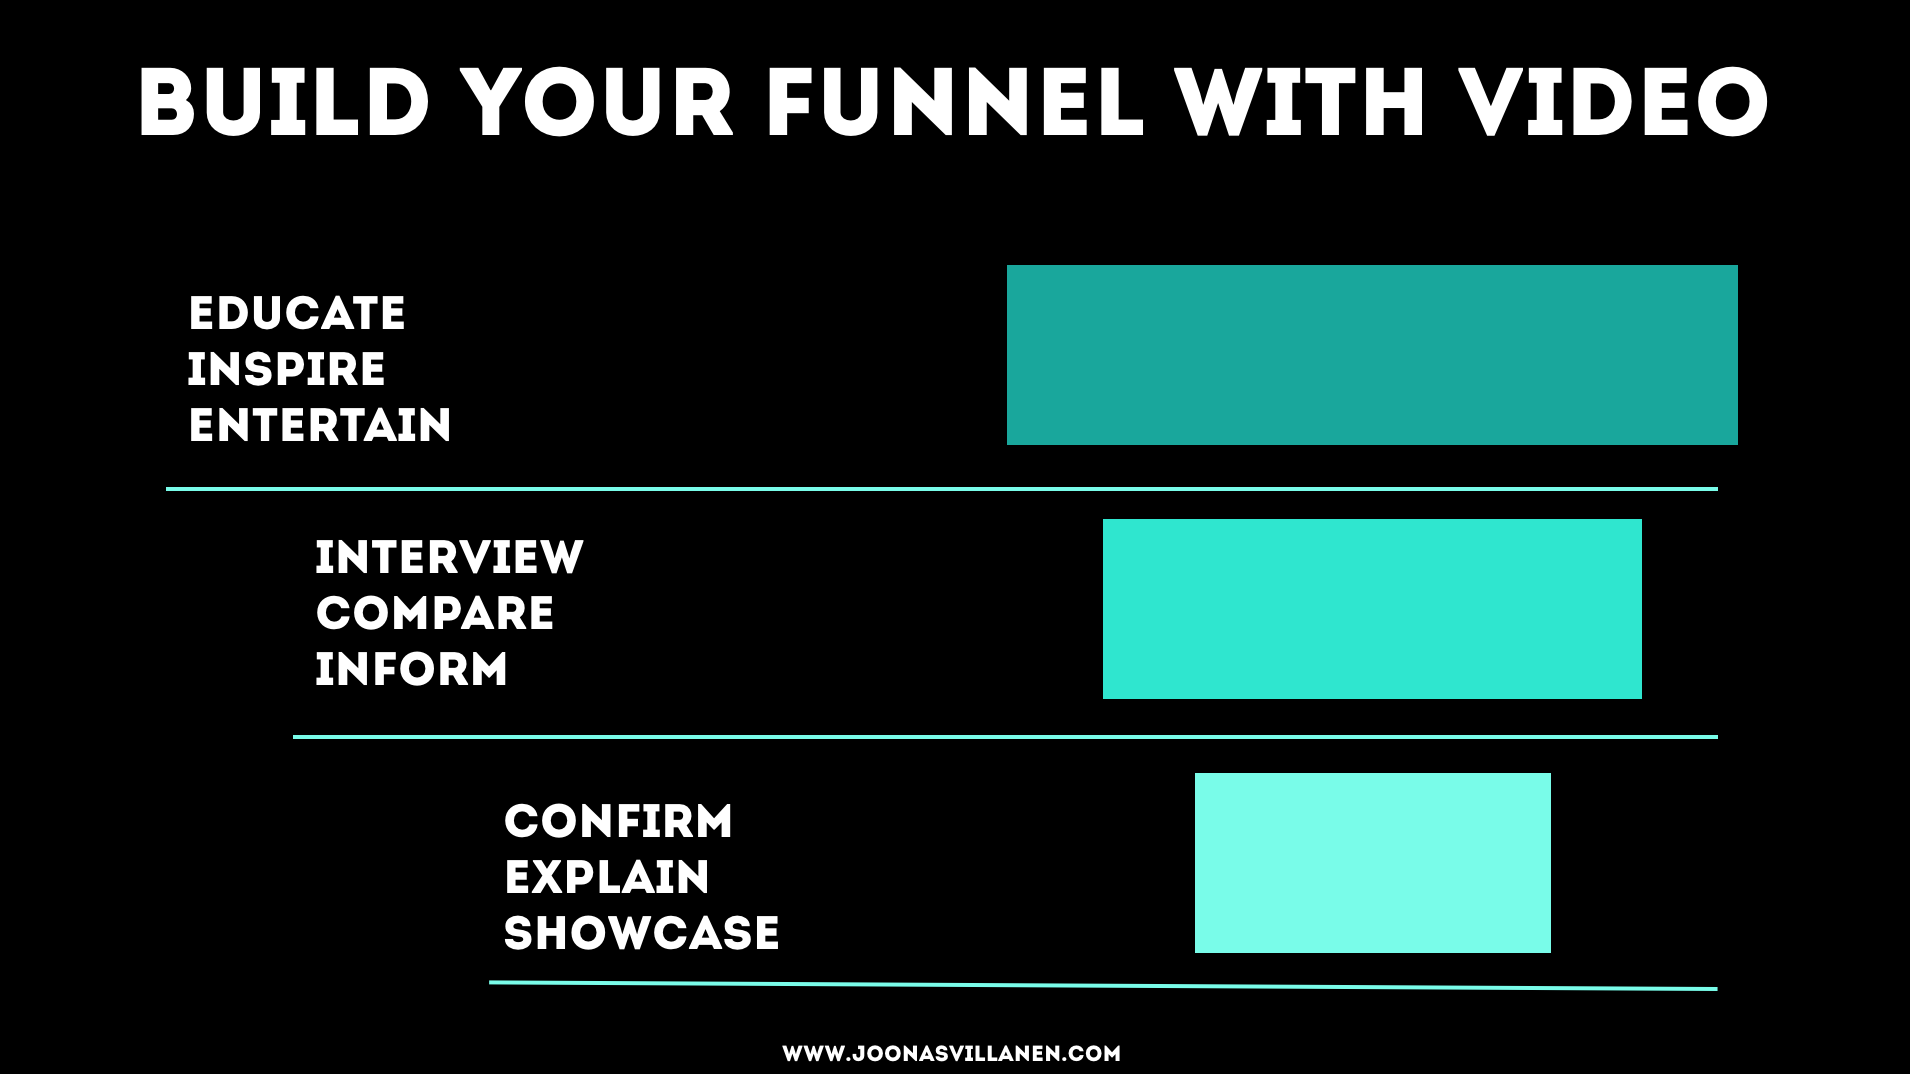 BUILDING A FUNNEL WITH VIDEO